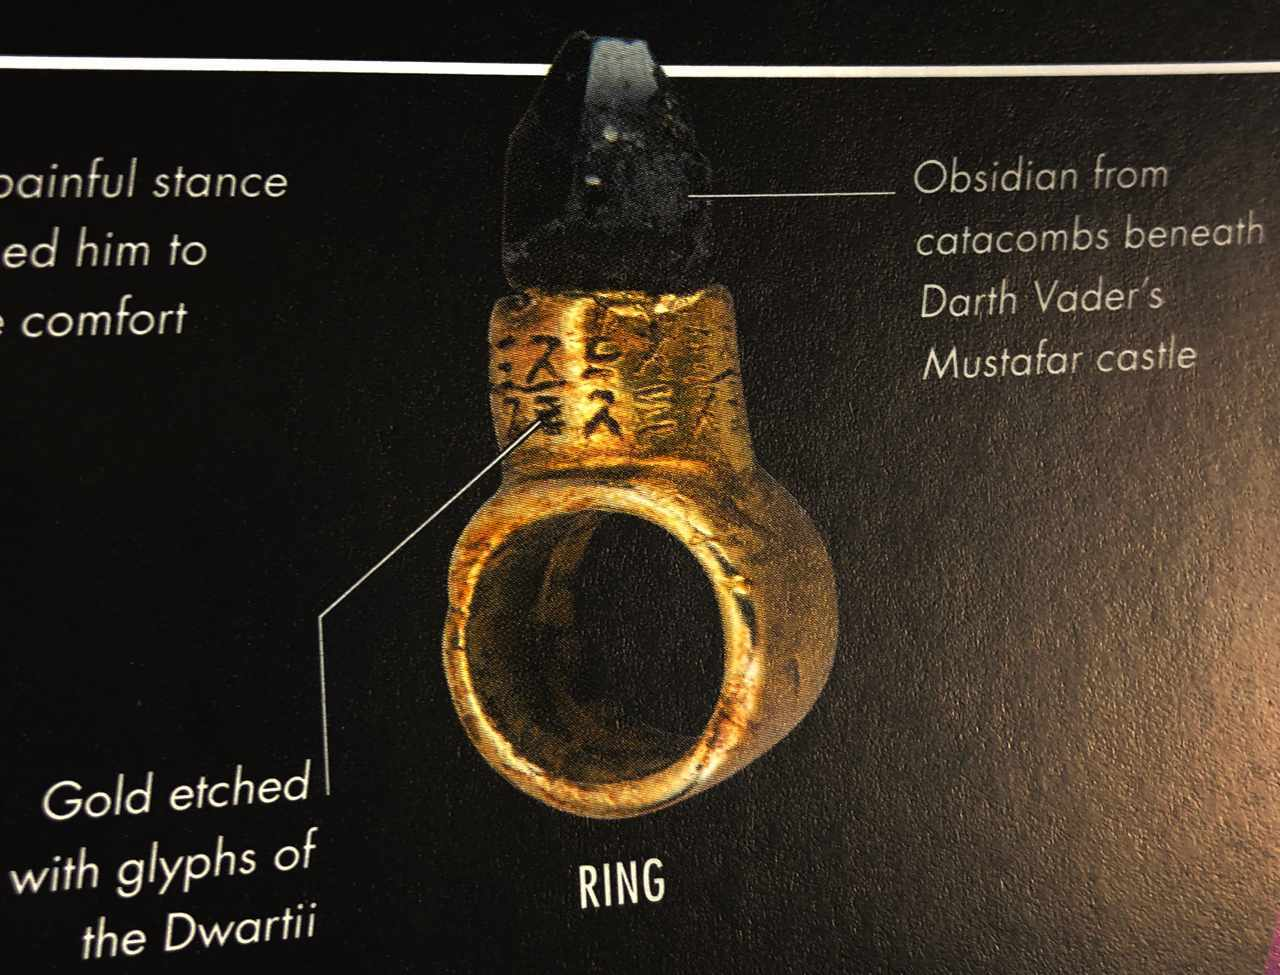 Snoke's Obsidian Ring In Star Wars: The Last Jedi Holds A Connection To Darth Vader